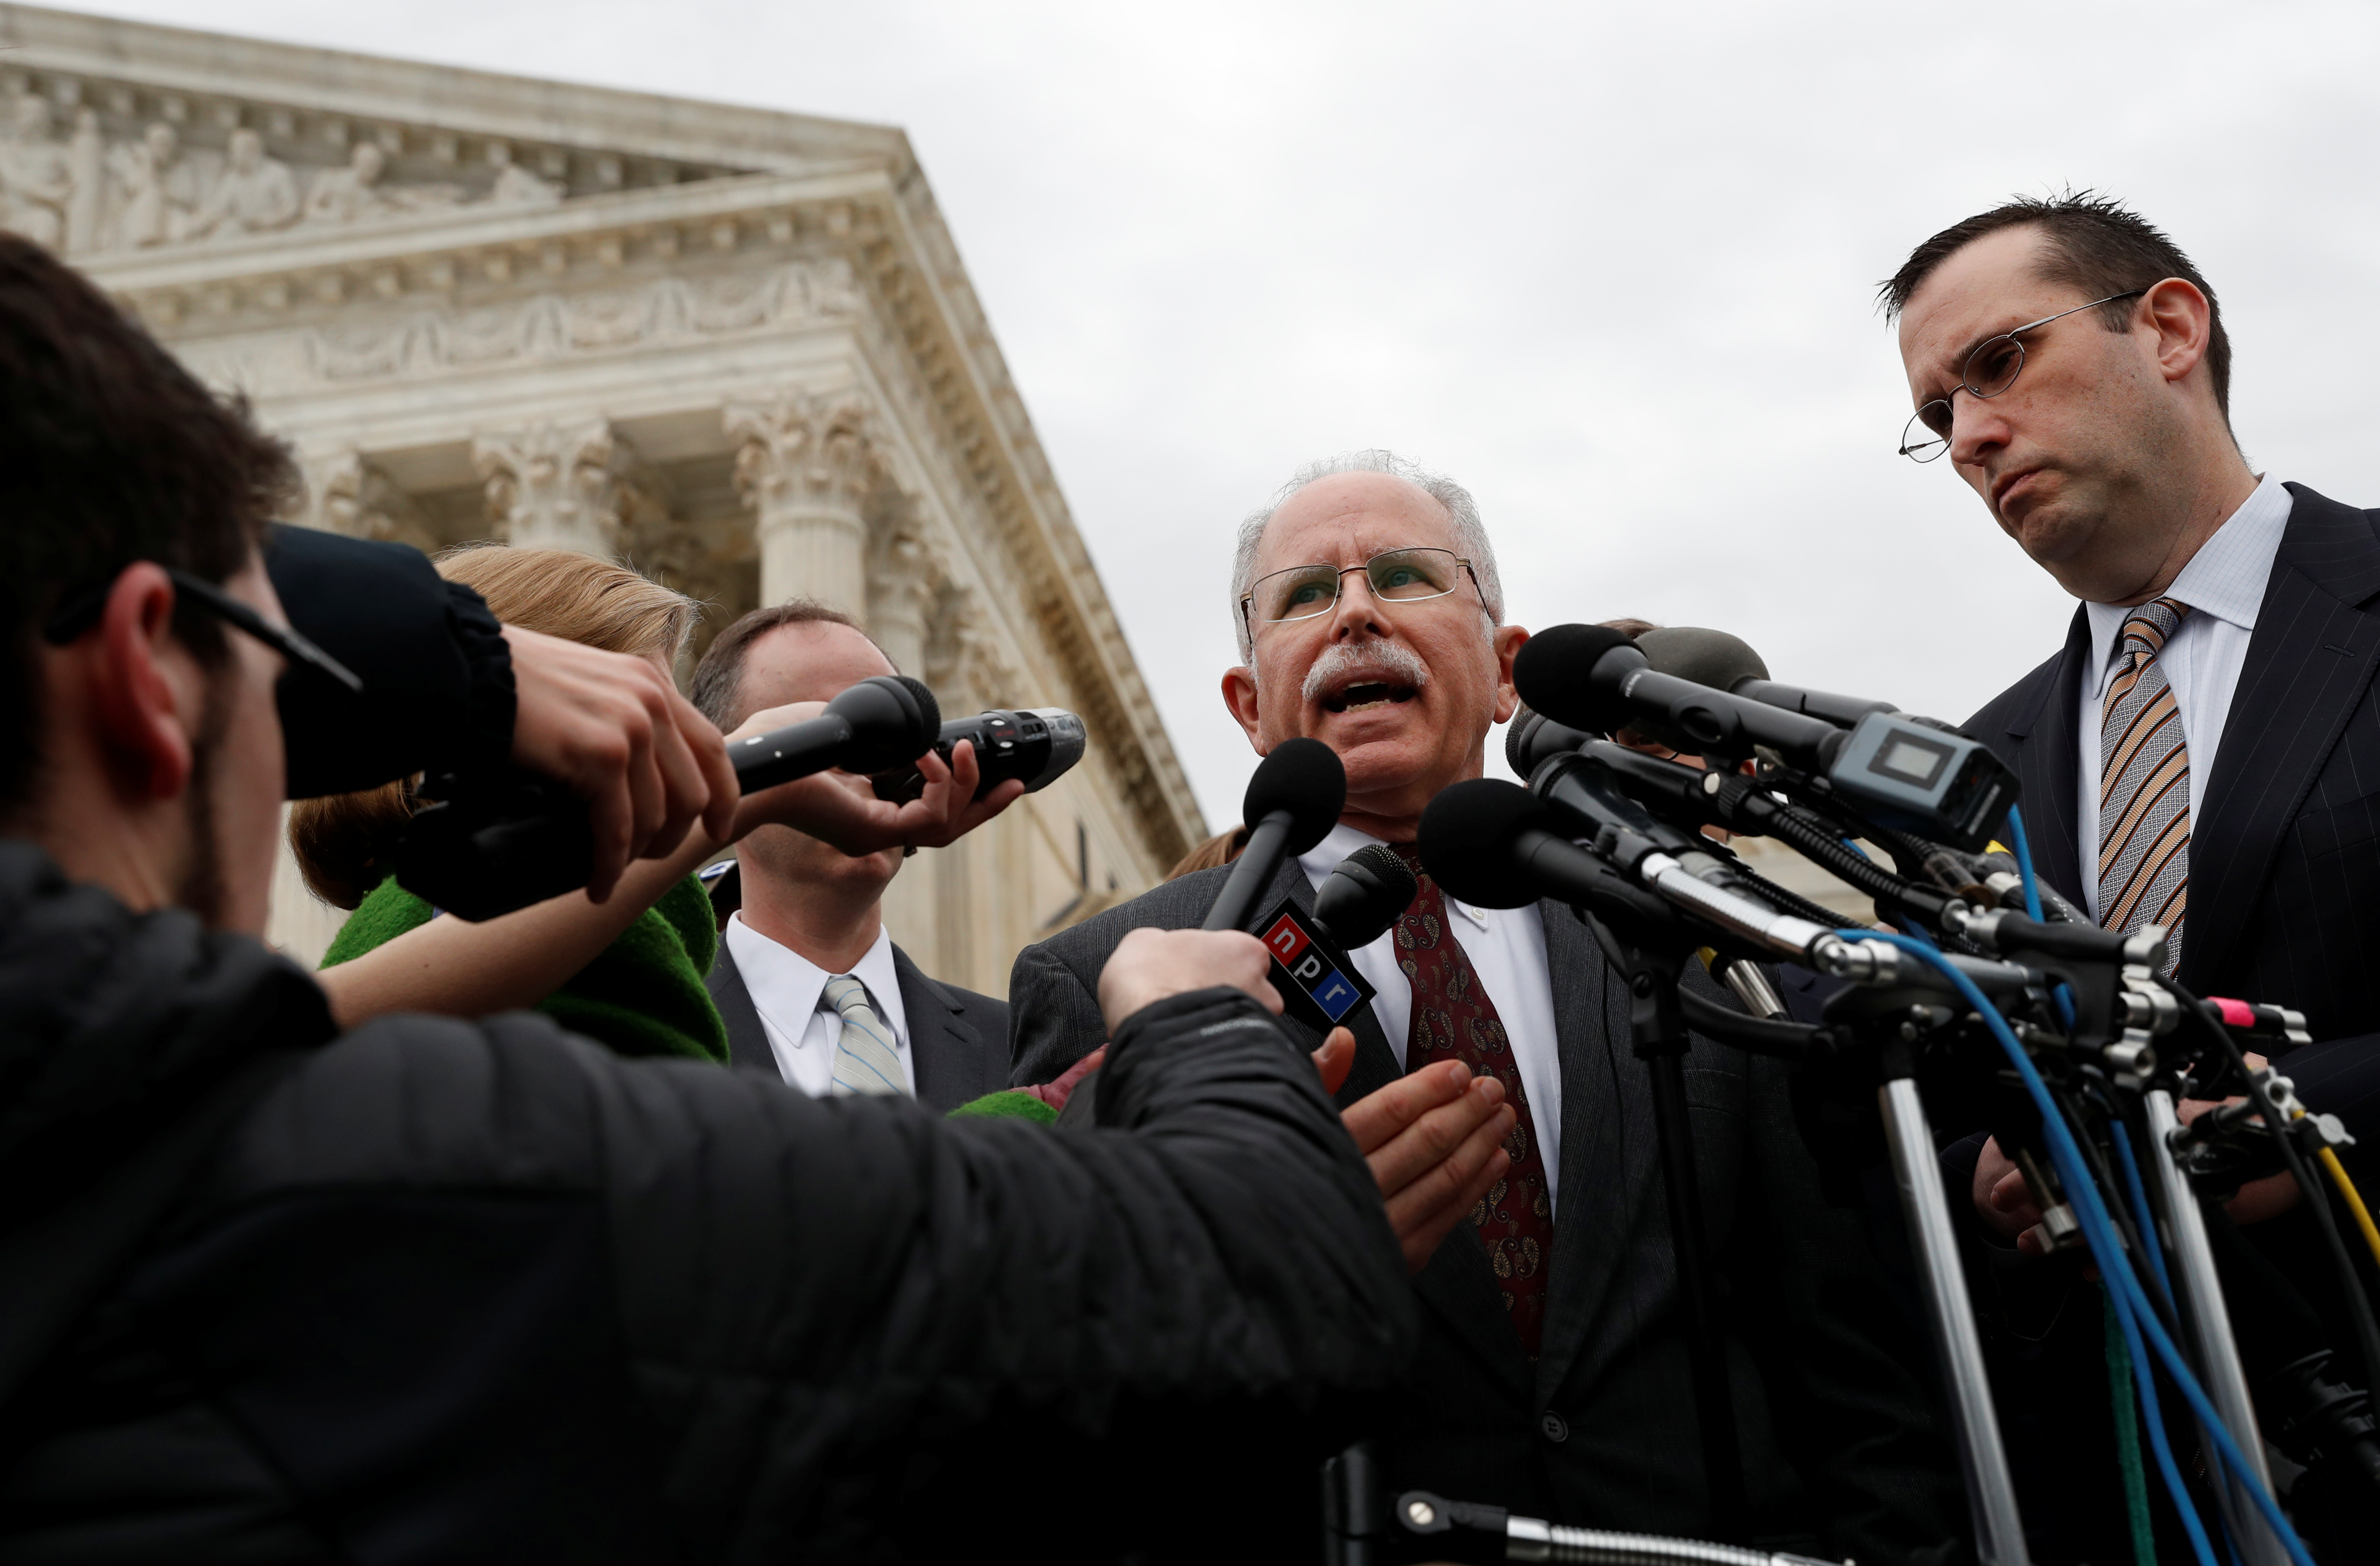 Mark Janus addresses the news media outside of the United States Supreme Court in Washington, U.S., February 26, 2018. REUTERS/Leah Millis